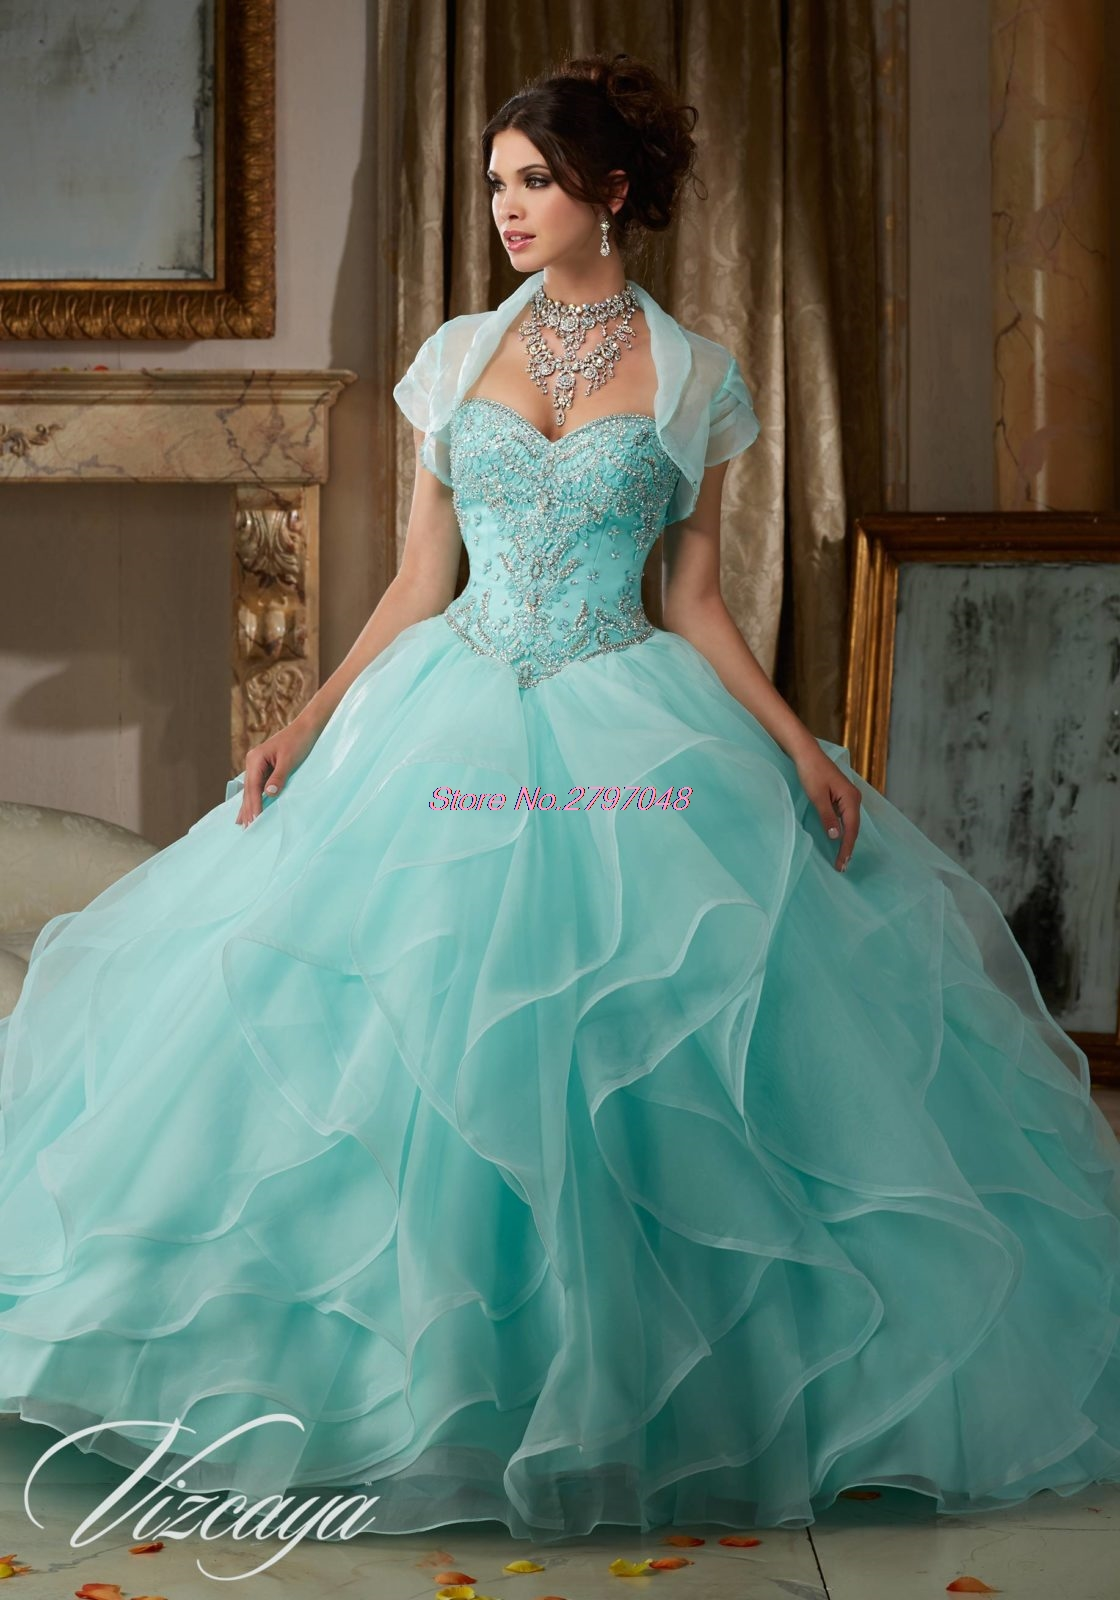 2017 Coral Mint Quinceanera Dresses Ball Gown Organza With Jacket Beaded  Cheap Sweet 16 Dresses Vestidos de 15 Anos Q45-in Quinceanera Dresses from  Weddings ... 5455a04b2428